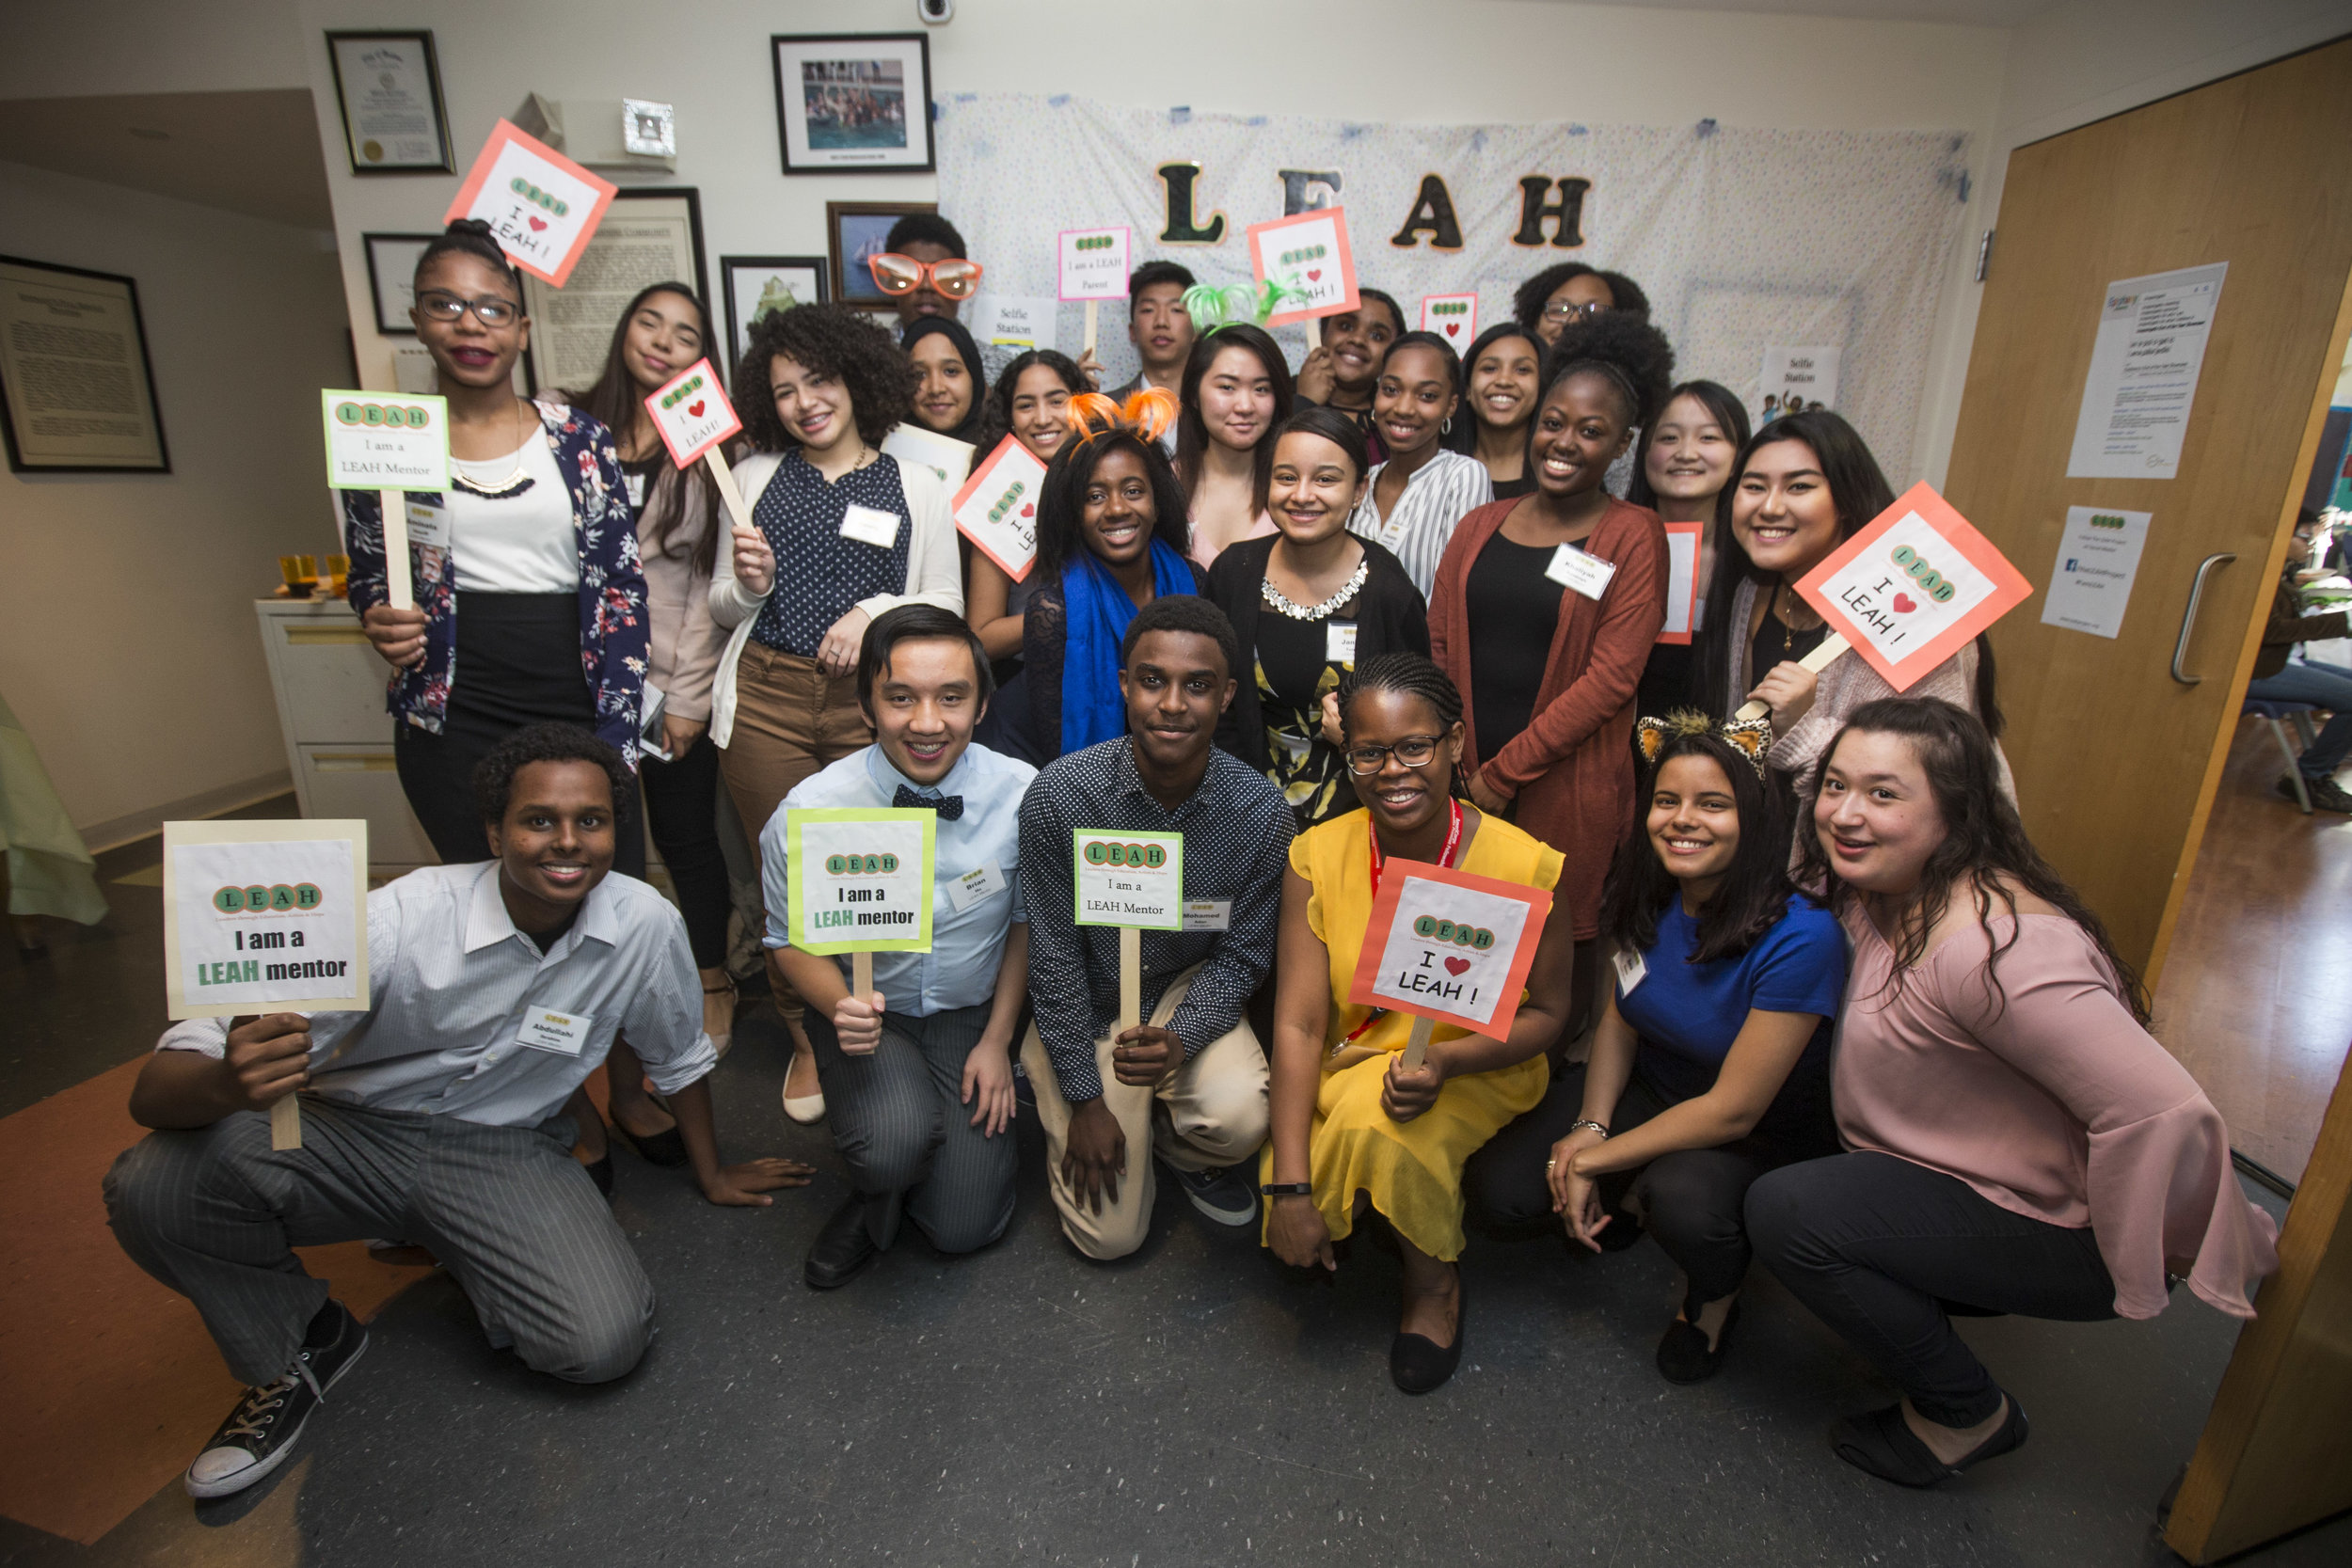 PHOTO: LEAH Mentors, Boston Public High School students, at the LEAH Project's End of Year Graduation Celebration June 2017 (photo by Scott Eisen)